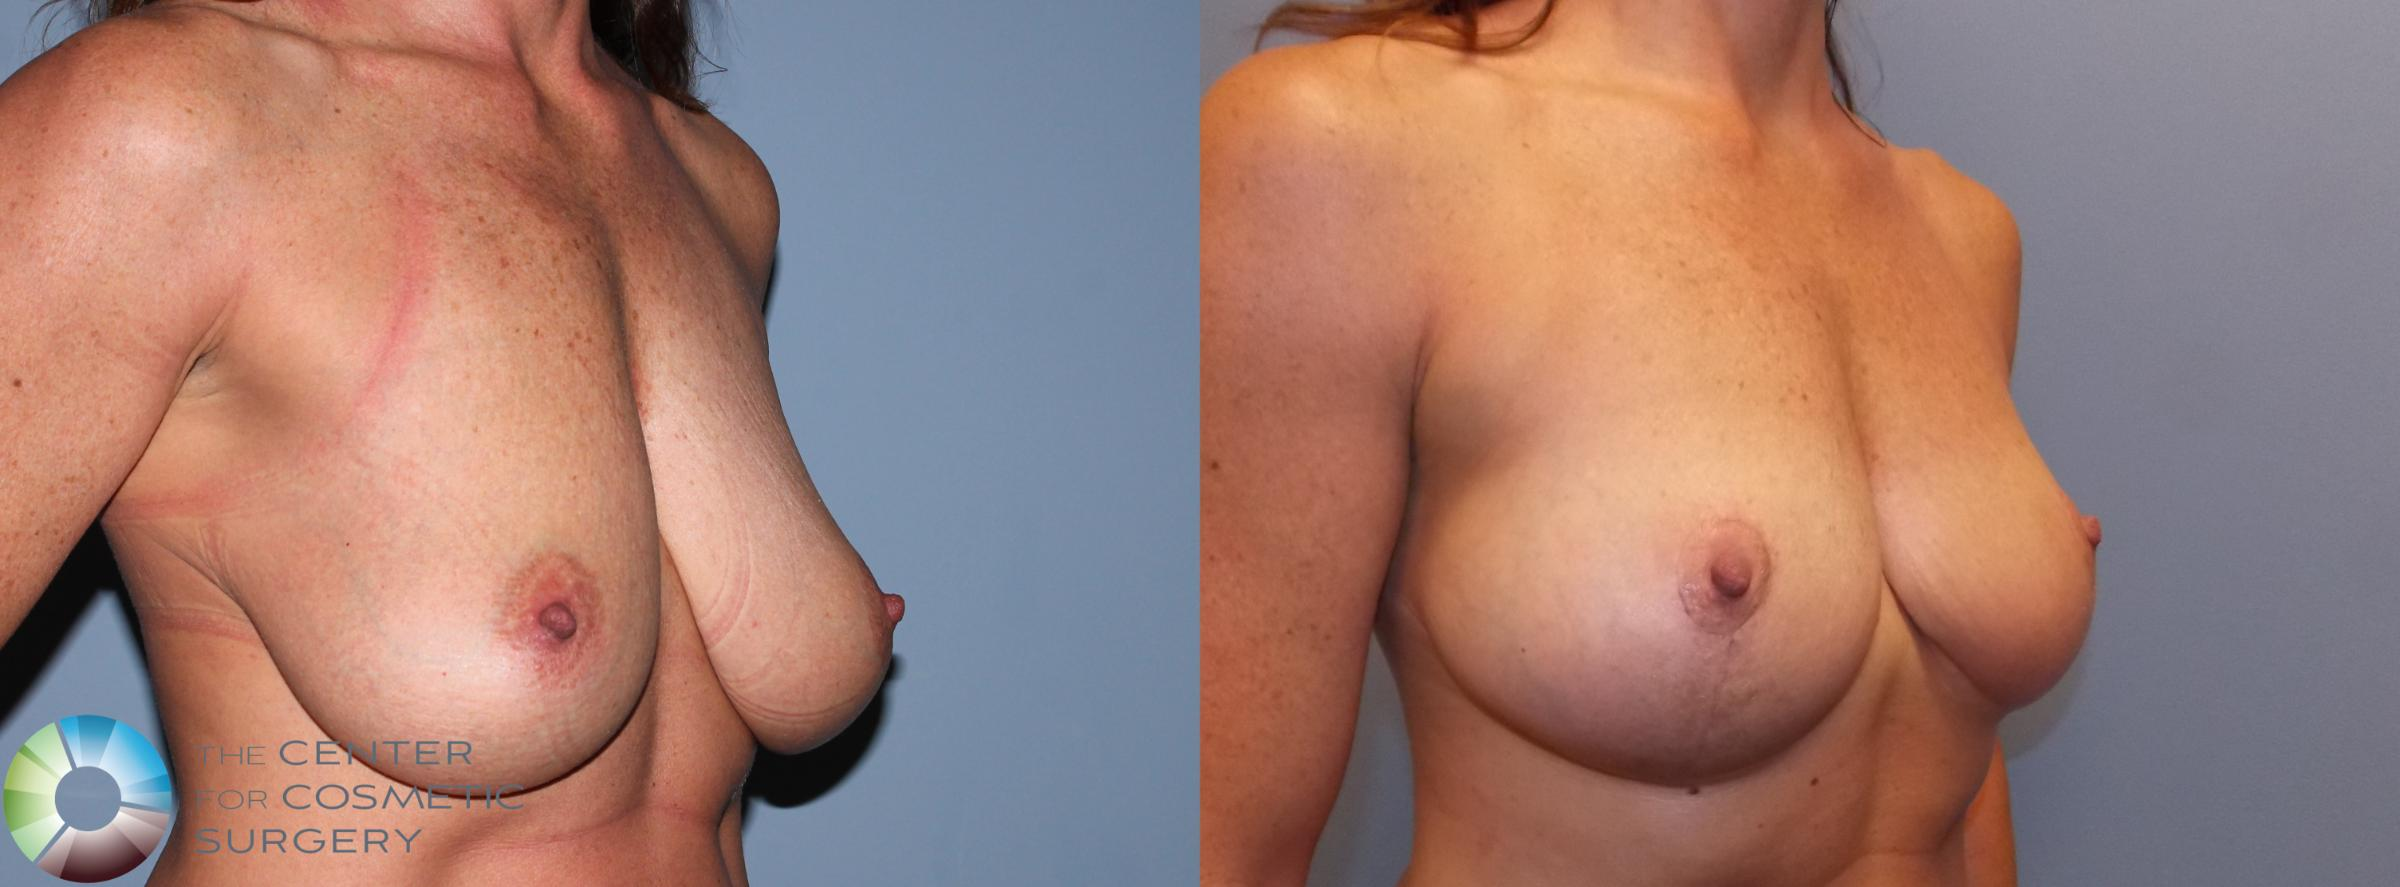 Breast Lift Case 868 Before & After View #3 | Golden, CO | The Center for Cosmetic Surgery